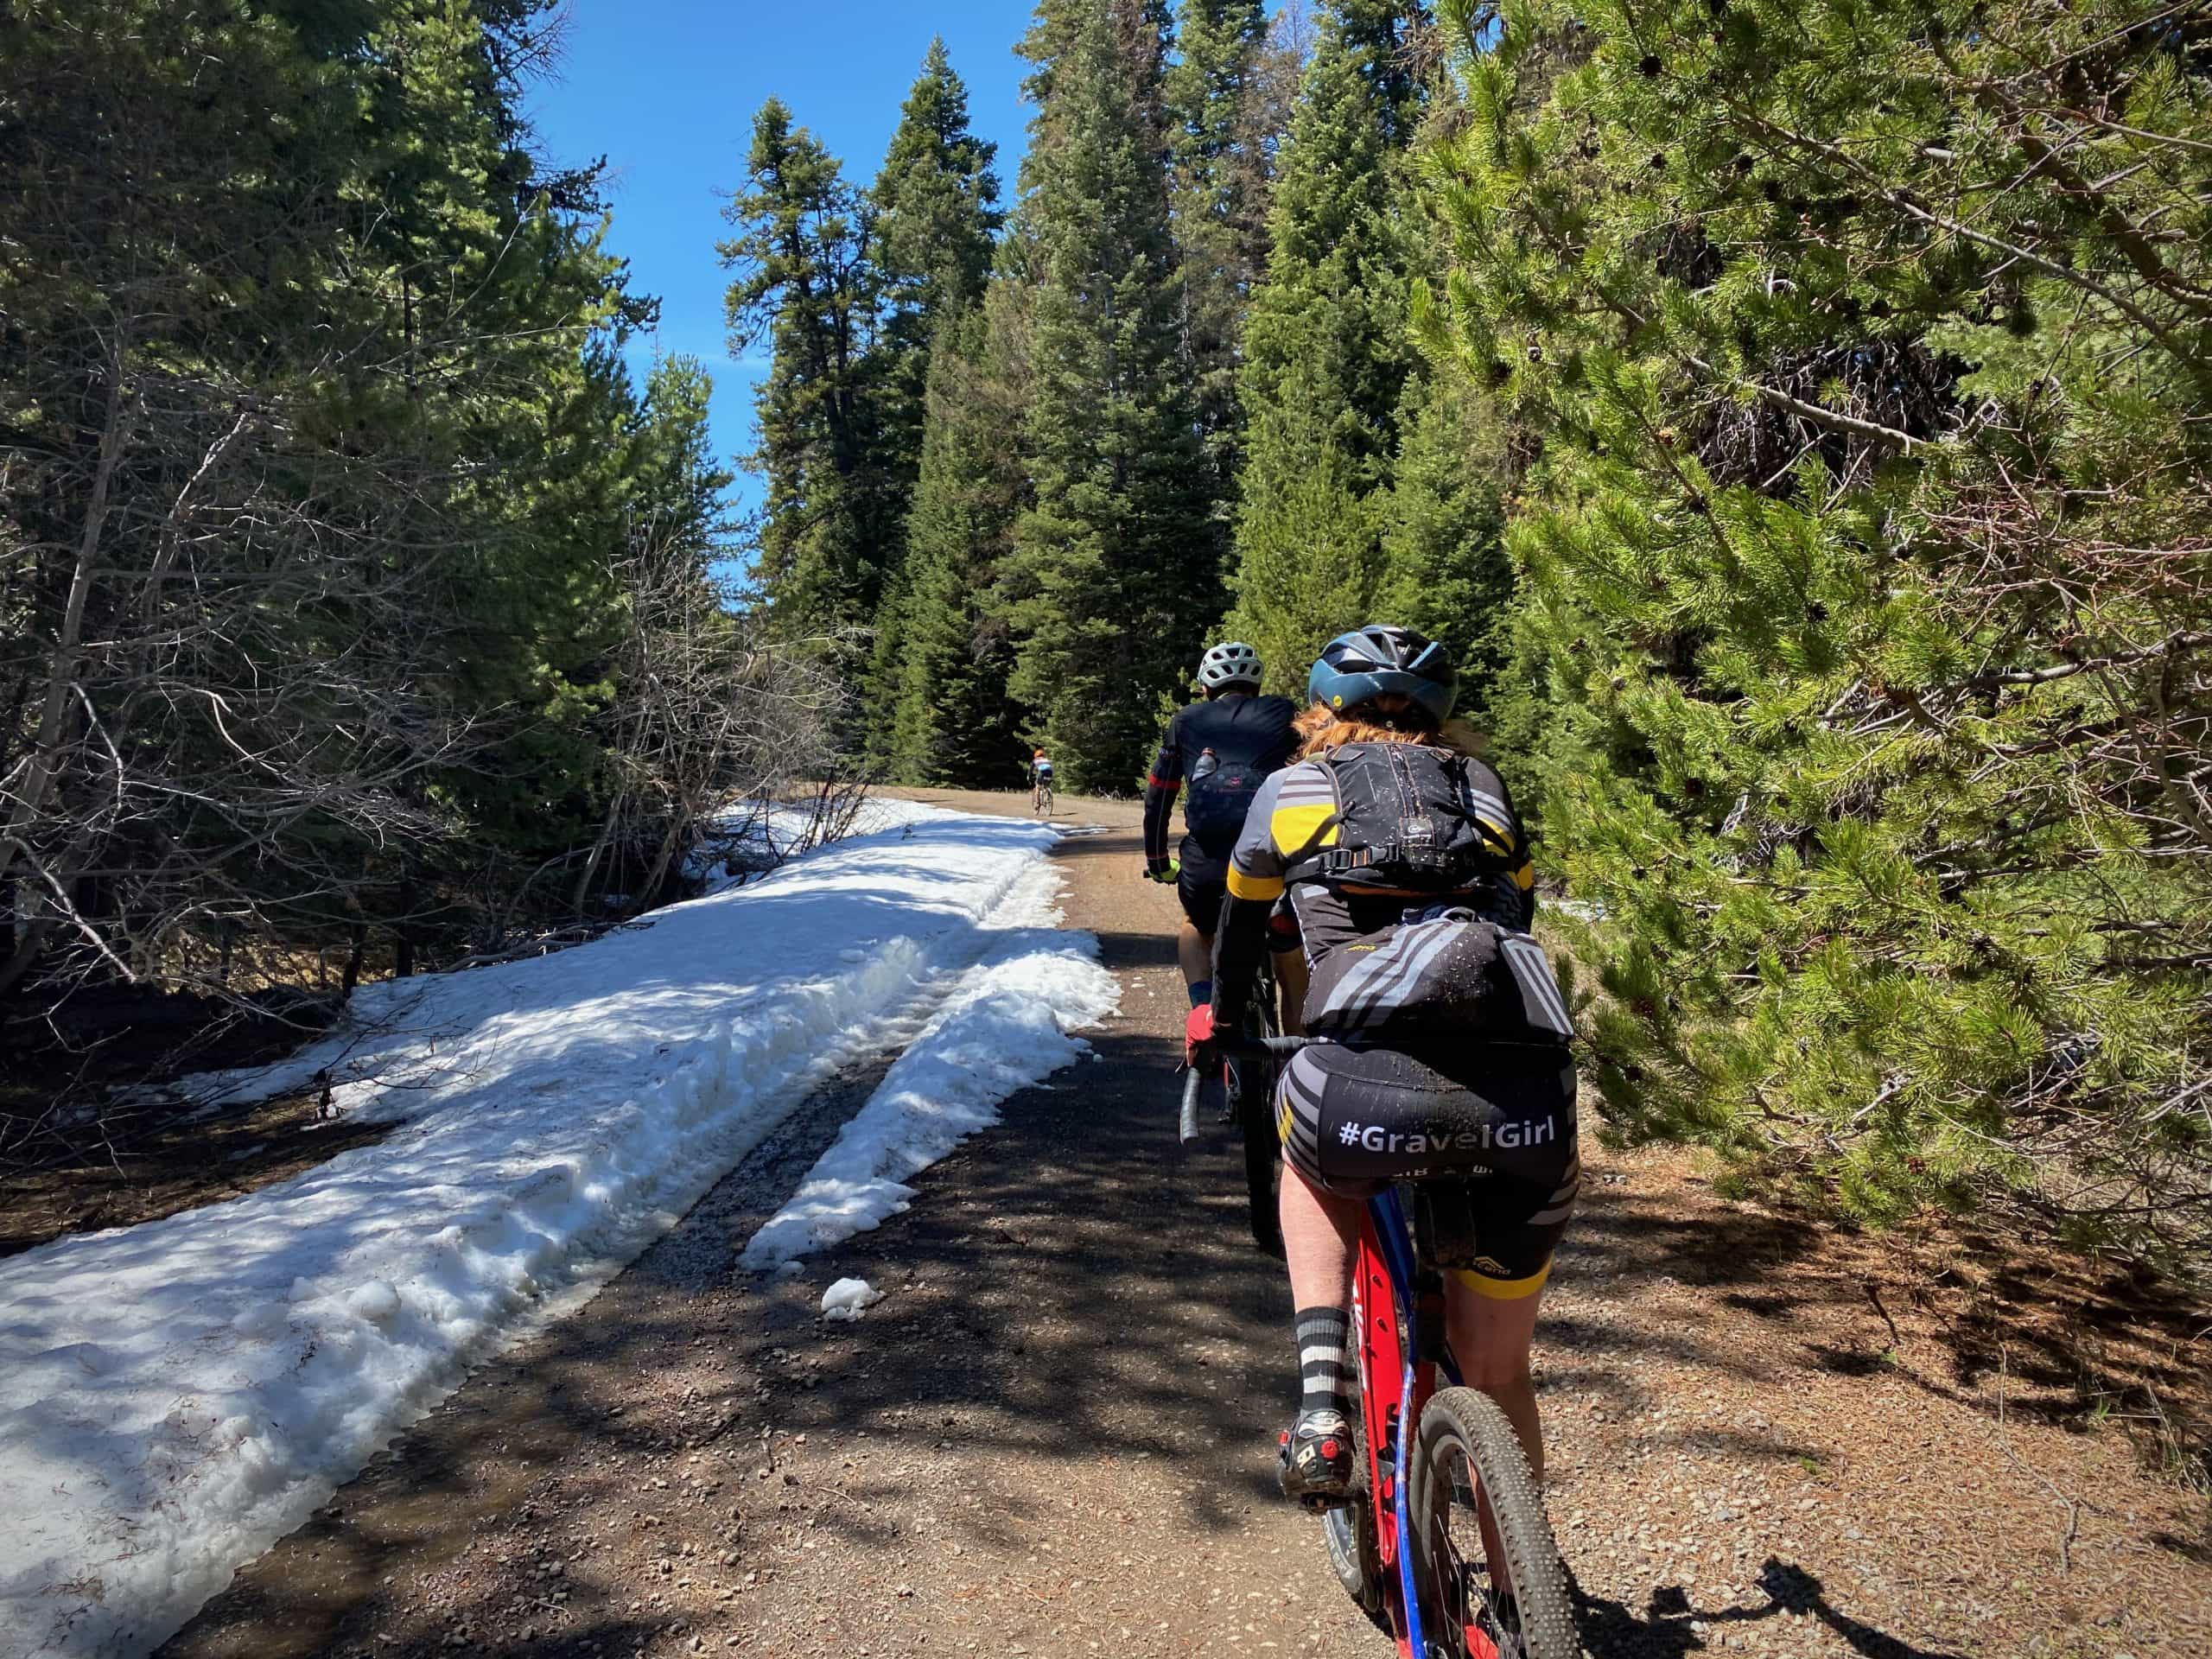 Gravel cyclists on forest service road in Ponderosa trees in Central Oregon.